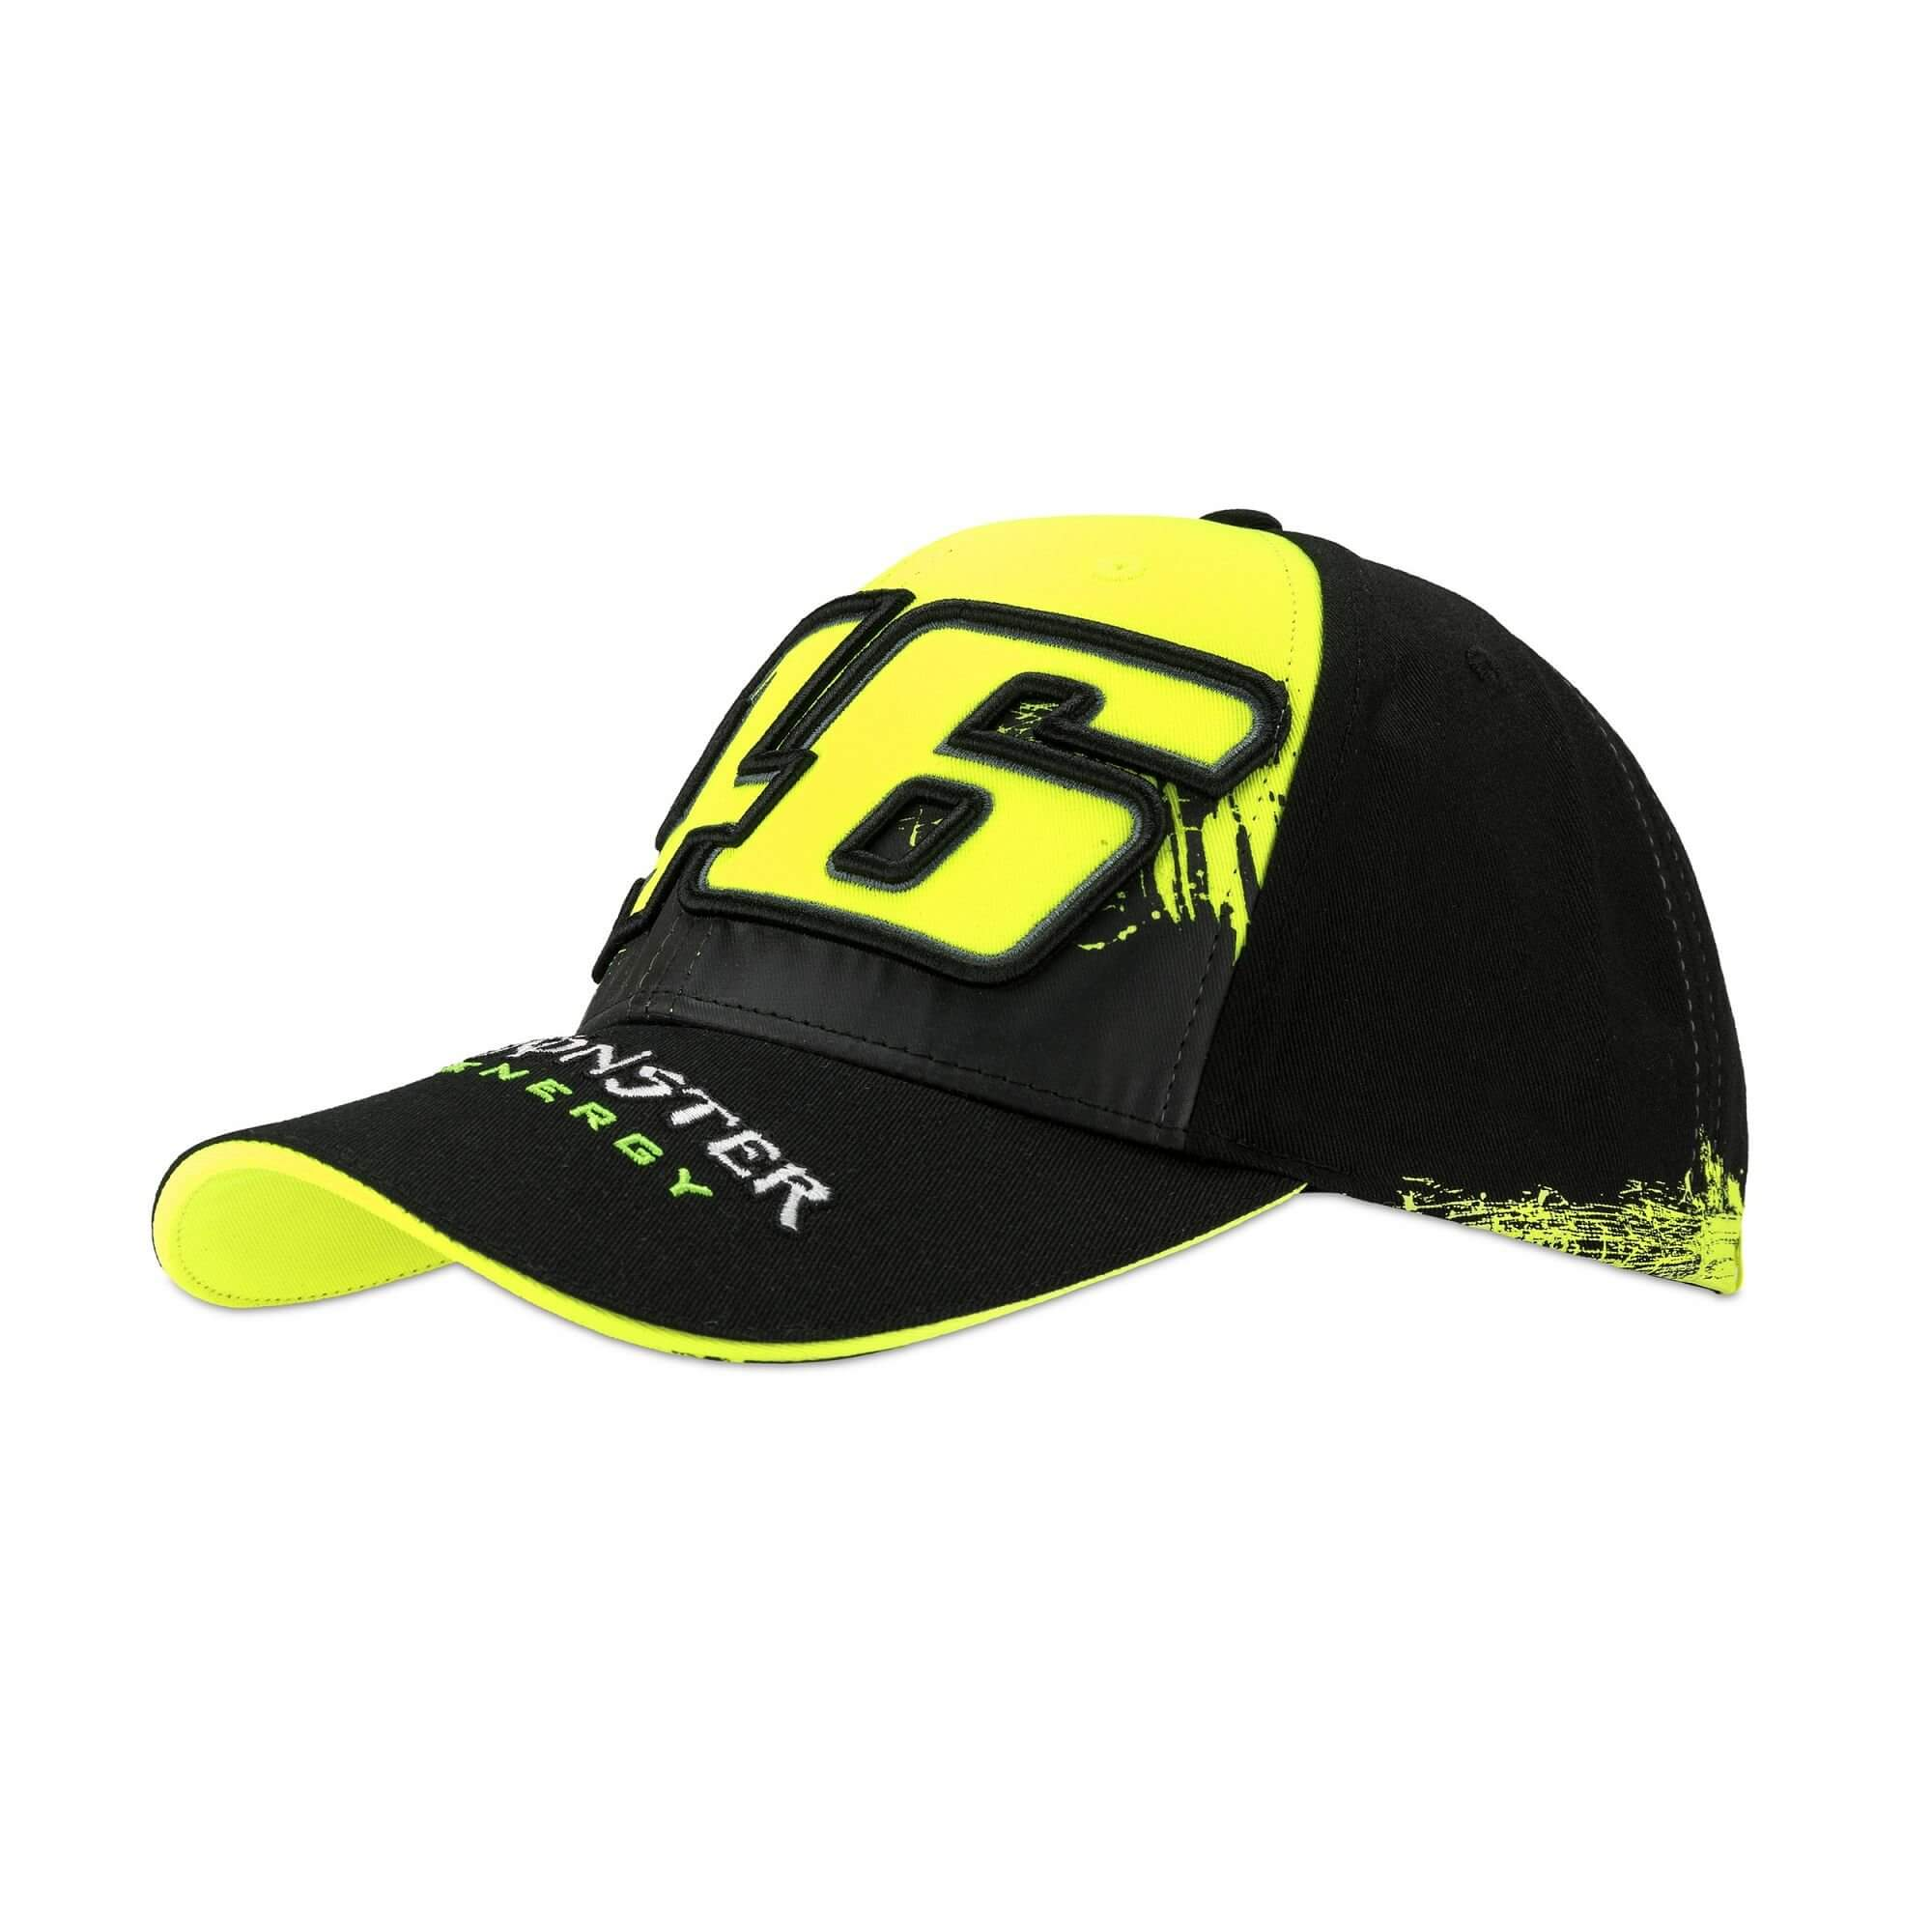 vr 46 valentino rossi monster energy baseball cap. Black Bedroom Furniture Sets. Home Design Ideas